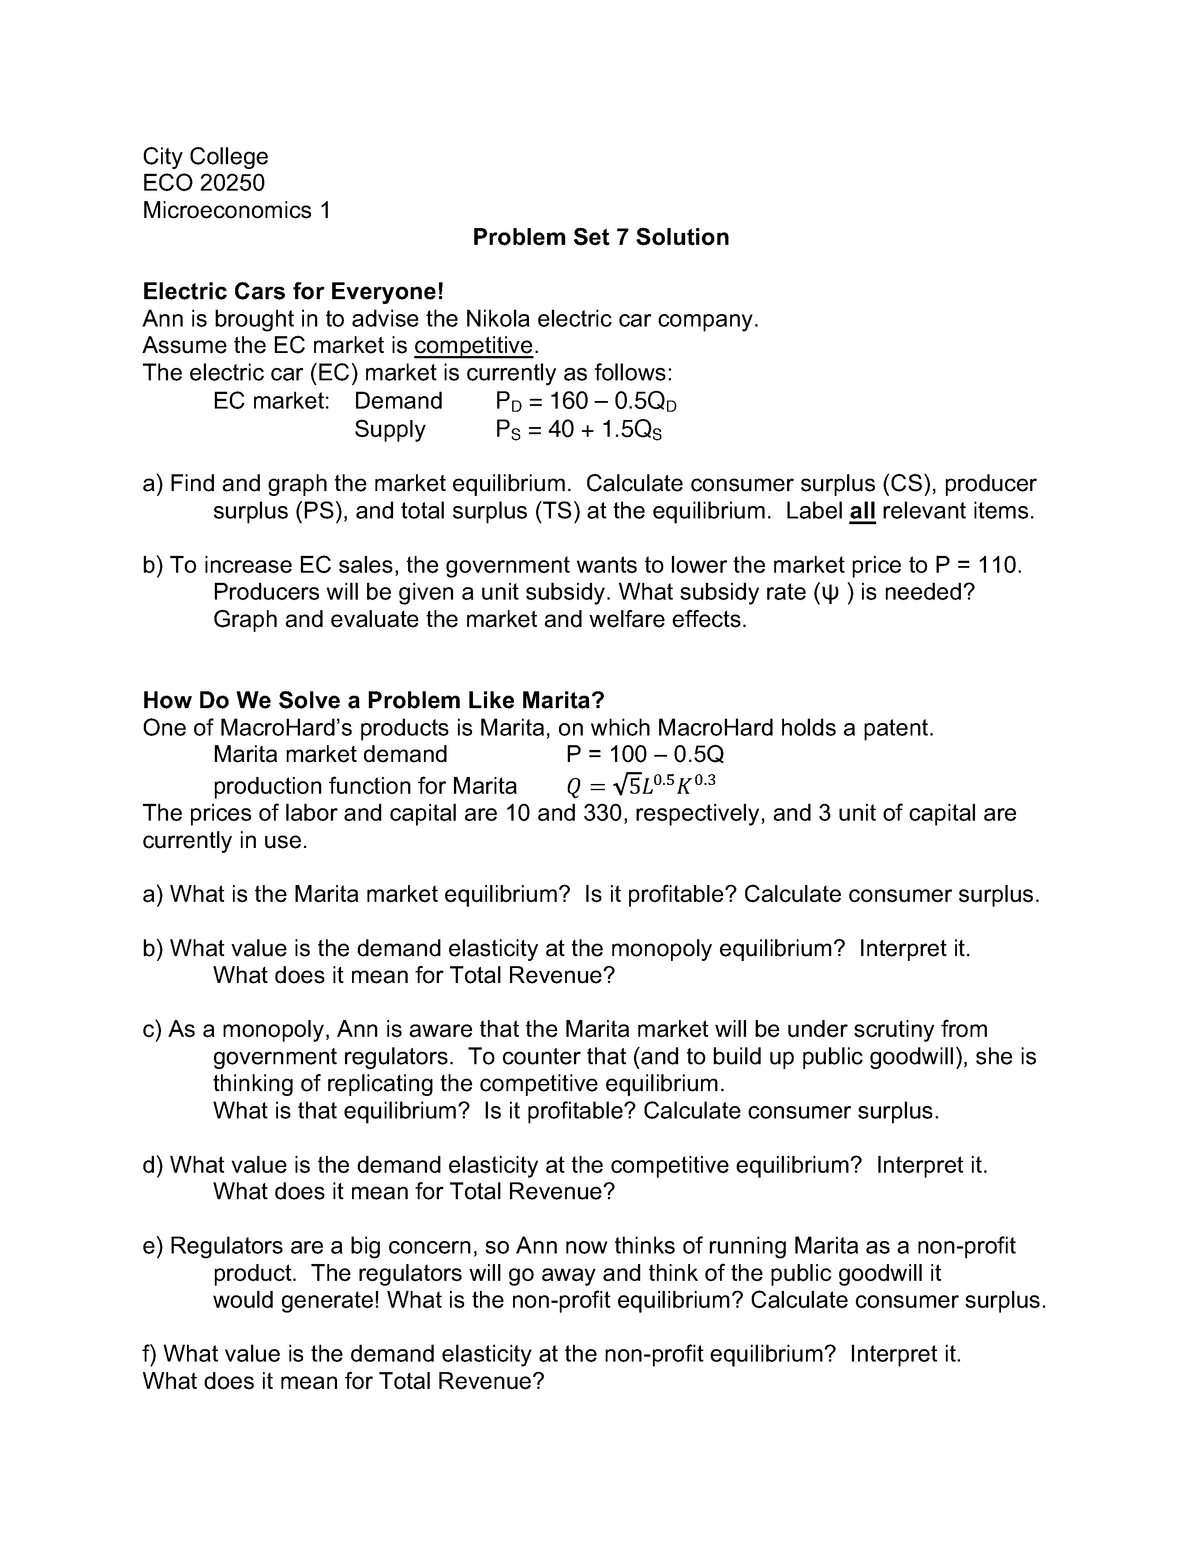 Problem Set 7 - ECO 20250 Intermediate Microeconomics - CCNY